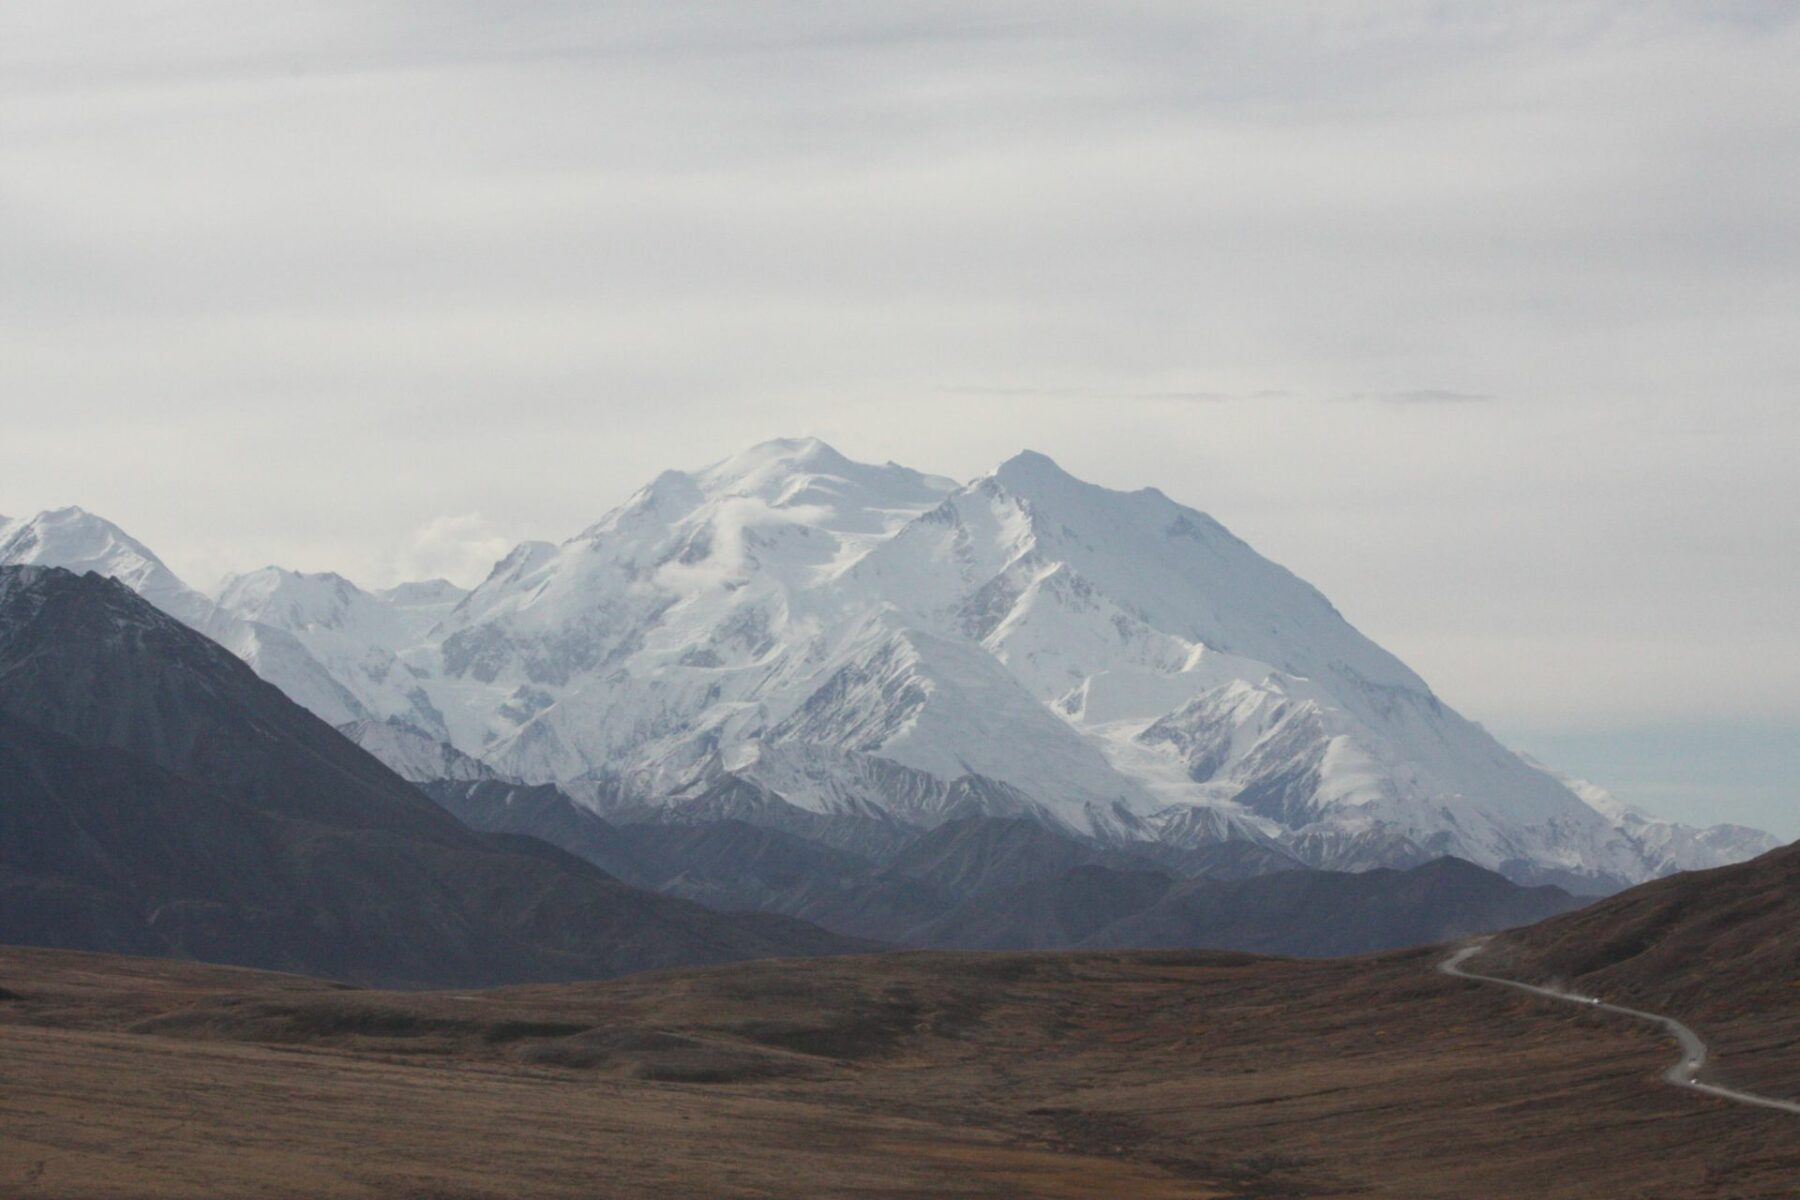 Denali, the High One, is seen across a valley in Denali National Park, a popular Alaska National park. There is a road following the valley.